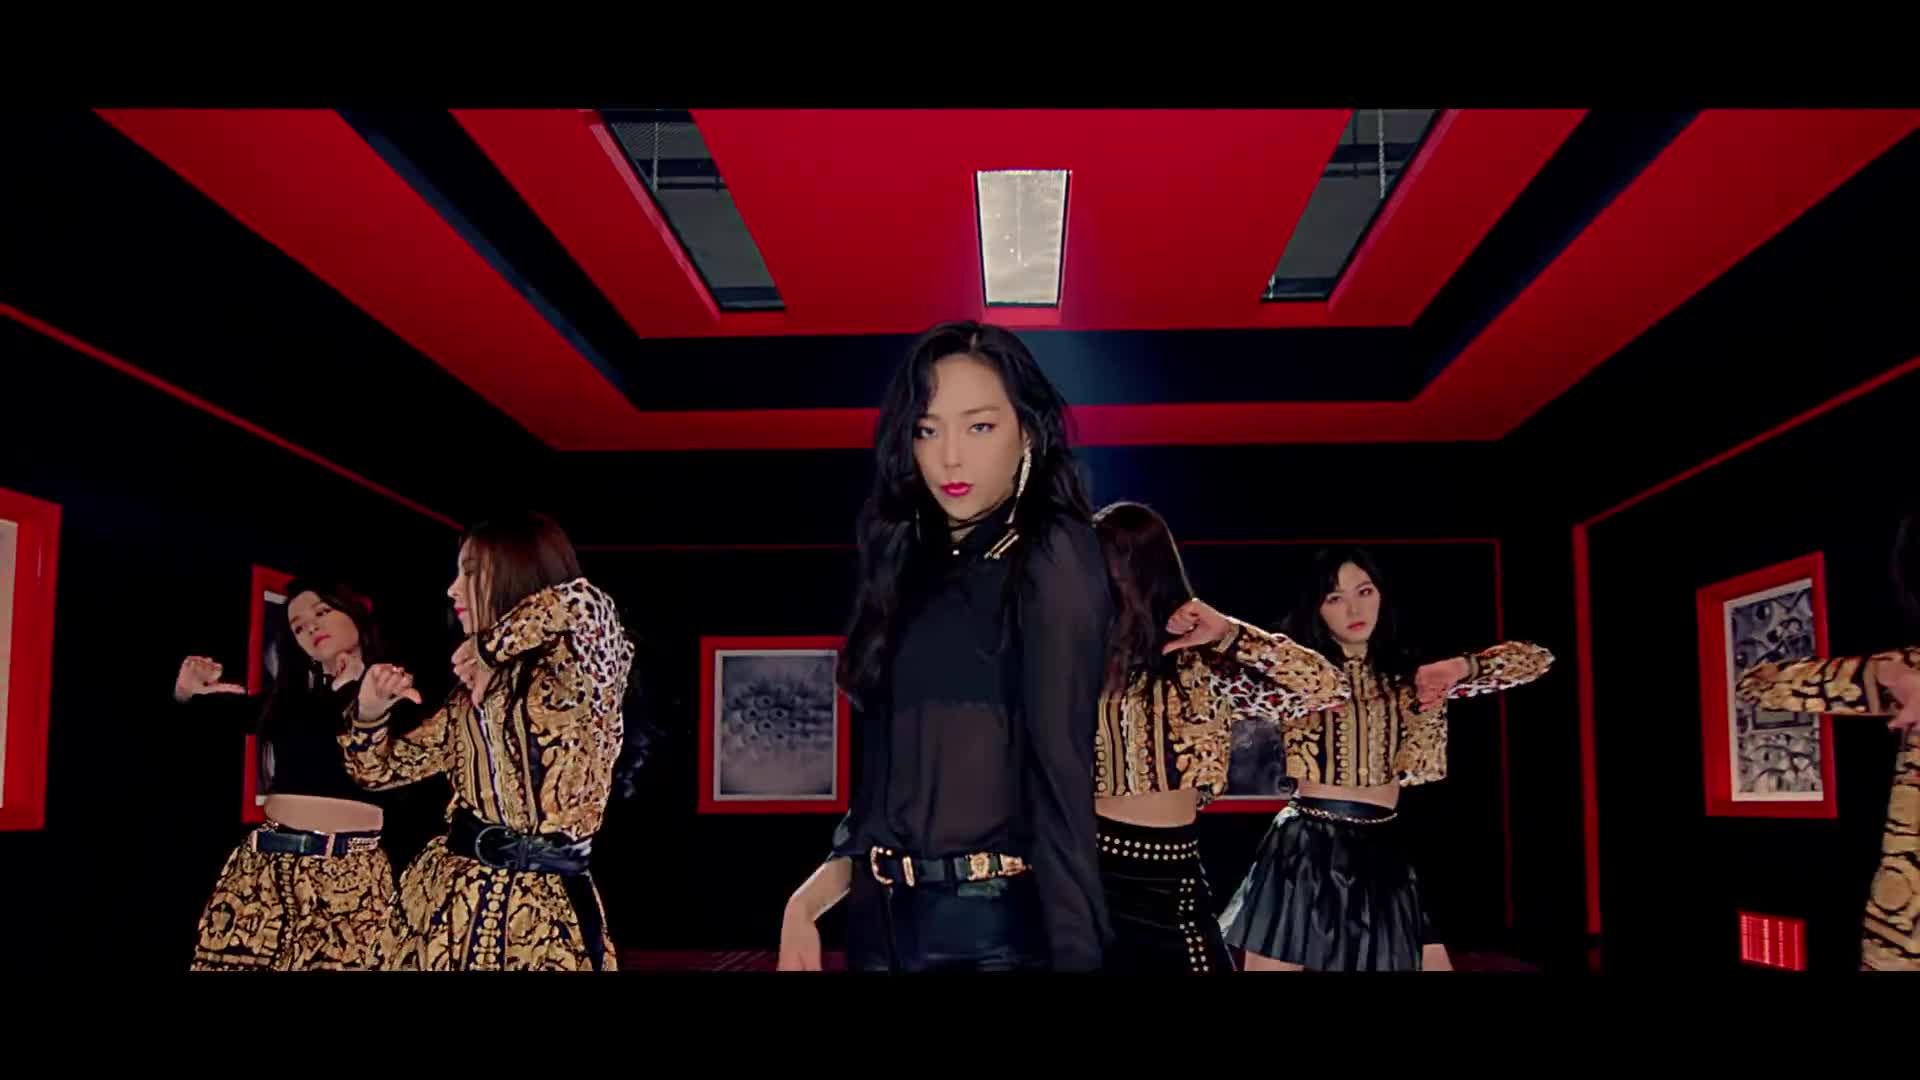 7th Mini Album, BLACK, BLACK DRESS, CLC, SORN, 블랙드레스, 씨엘씨, 오승희, 장승연, 최유진, CLC(씨엘씨) - 'BLACK DRESS' Official Music Video GIFs